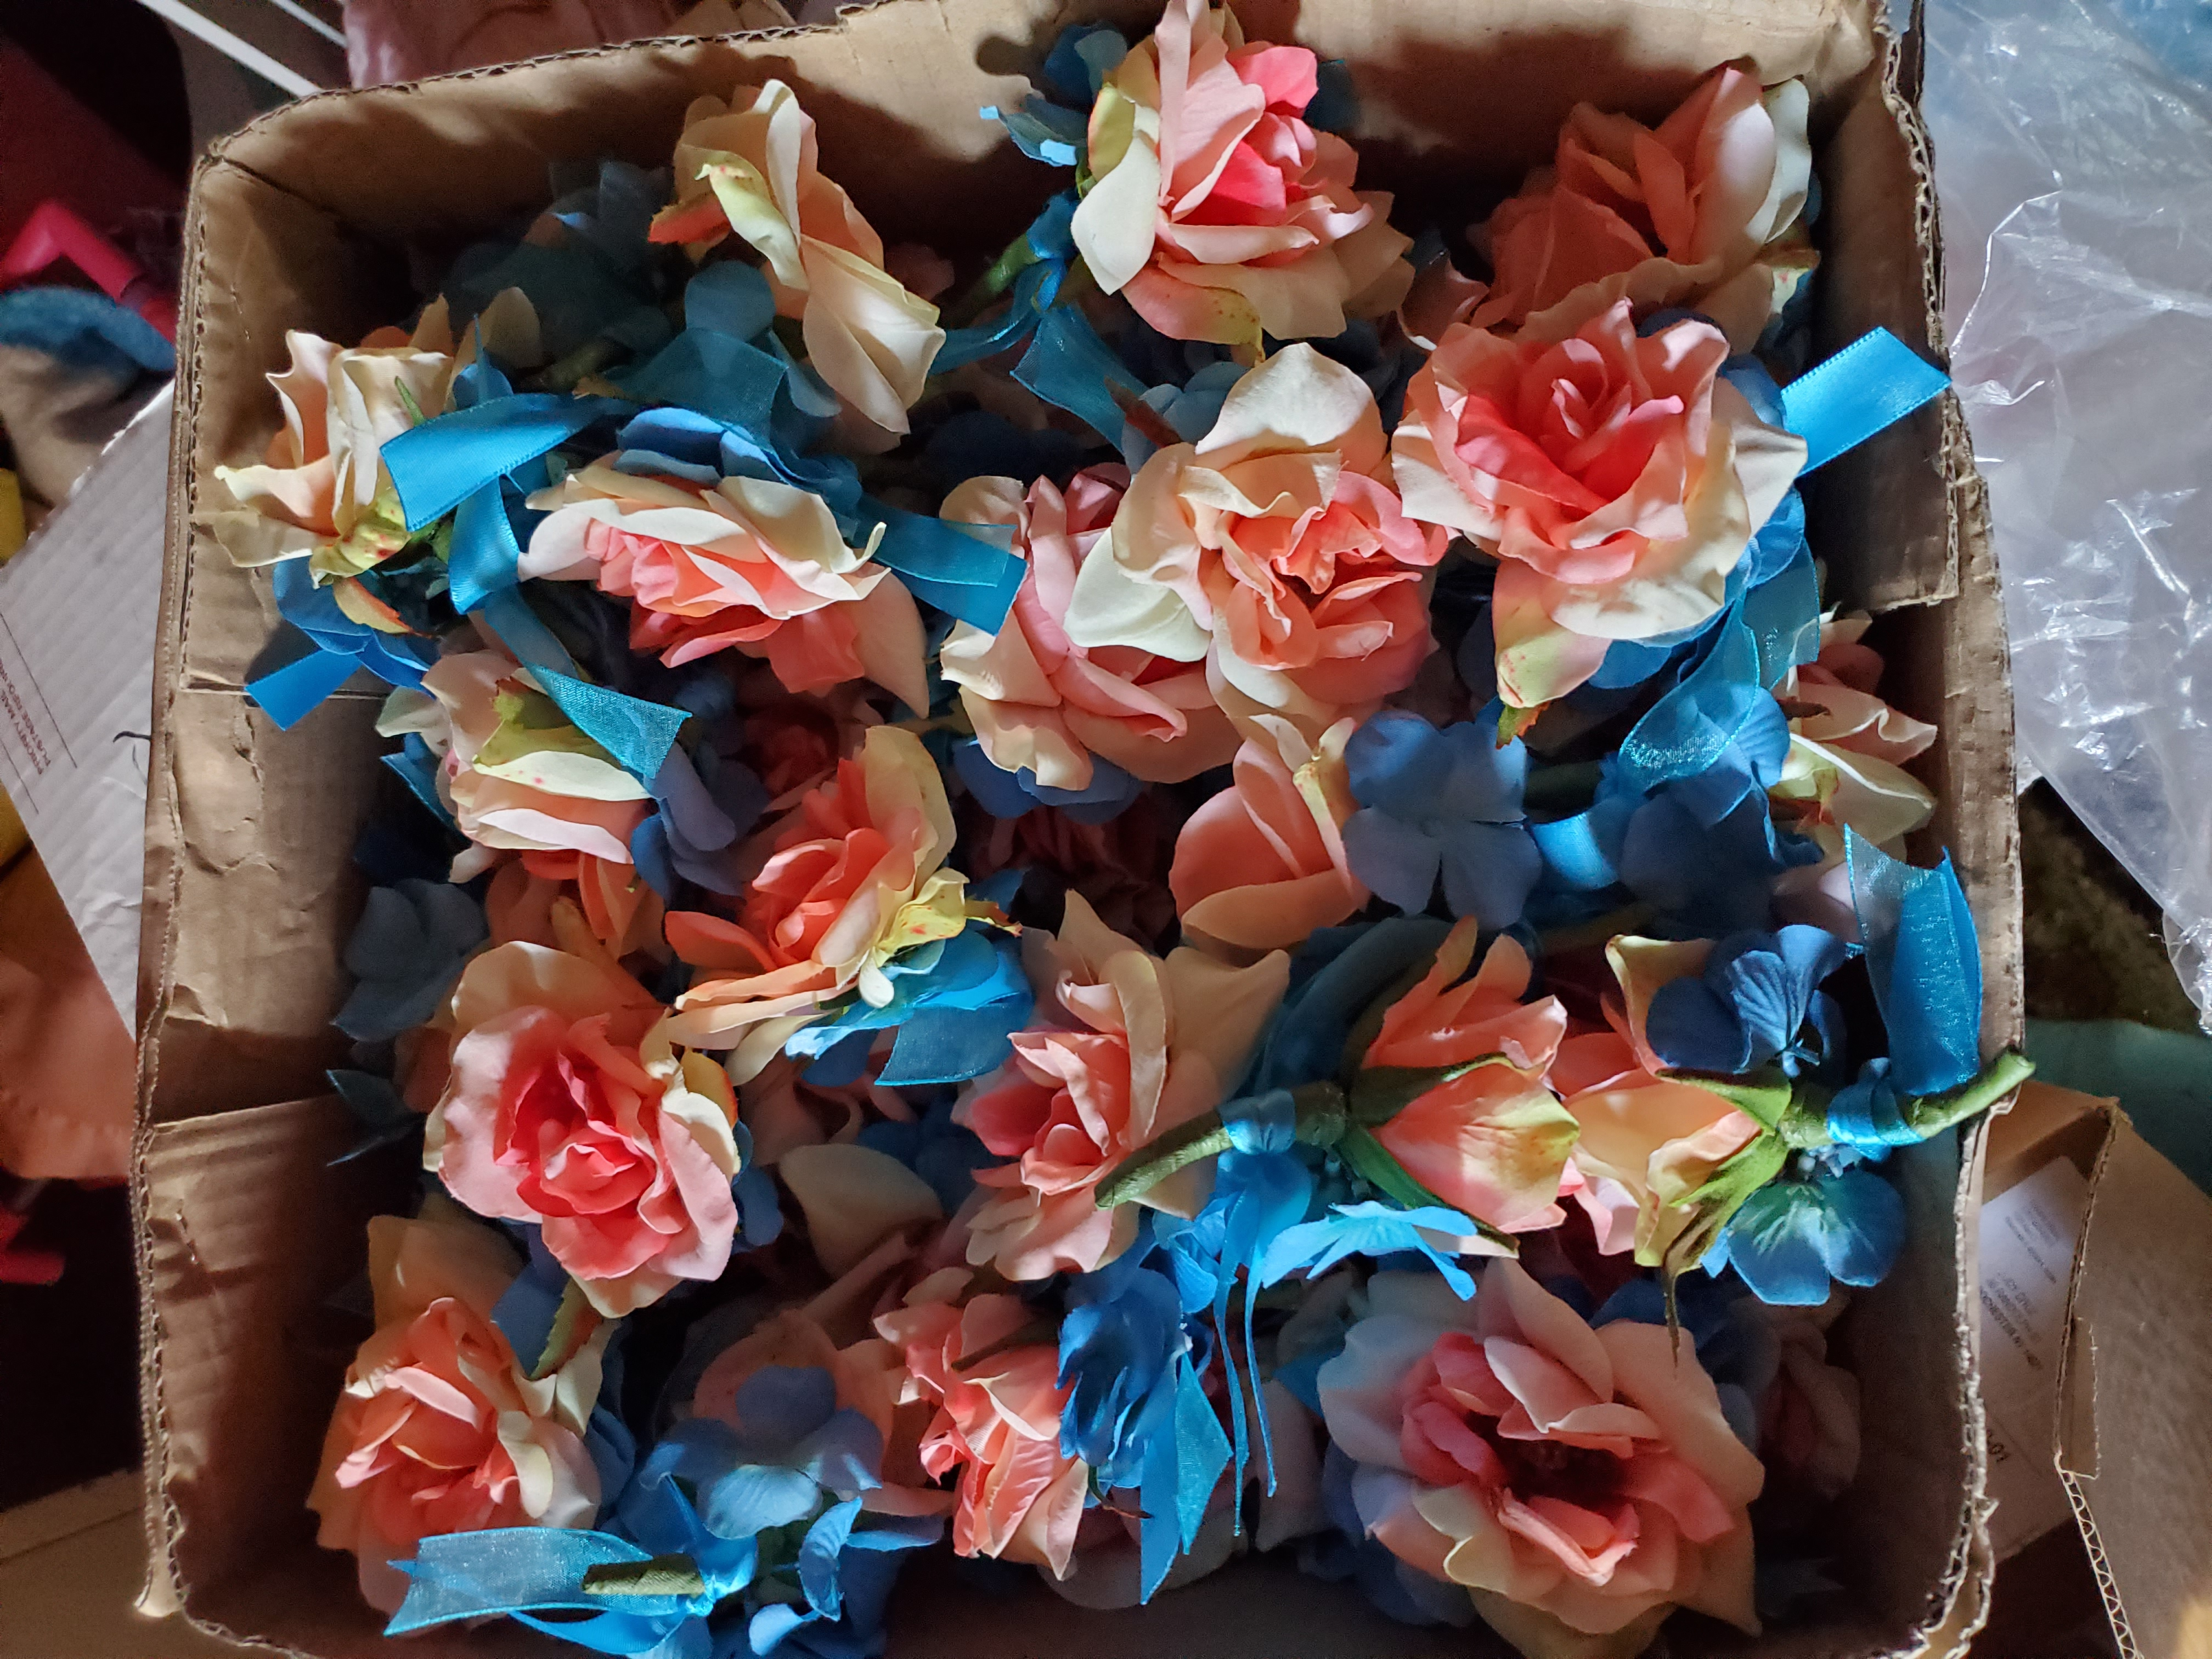 Coral And Blue Single Stem Roses 48 Of Them